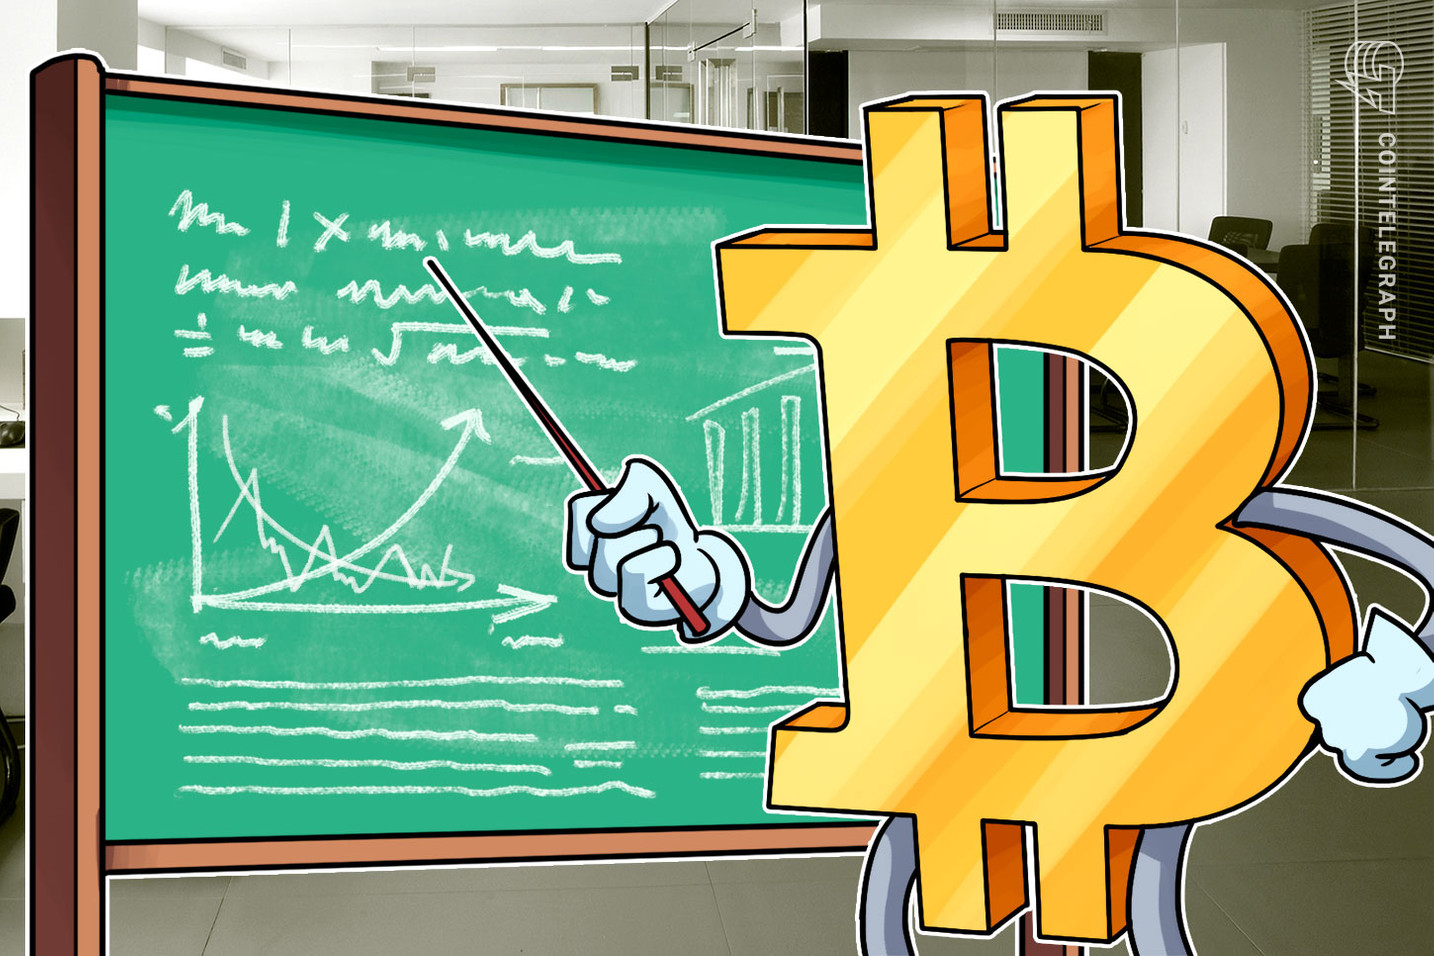 Bitcoin volume unaffected by Tether's (USDT) market dominance — Data shows